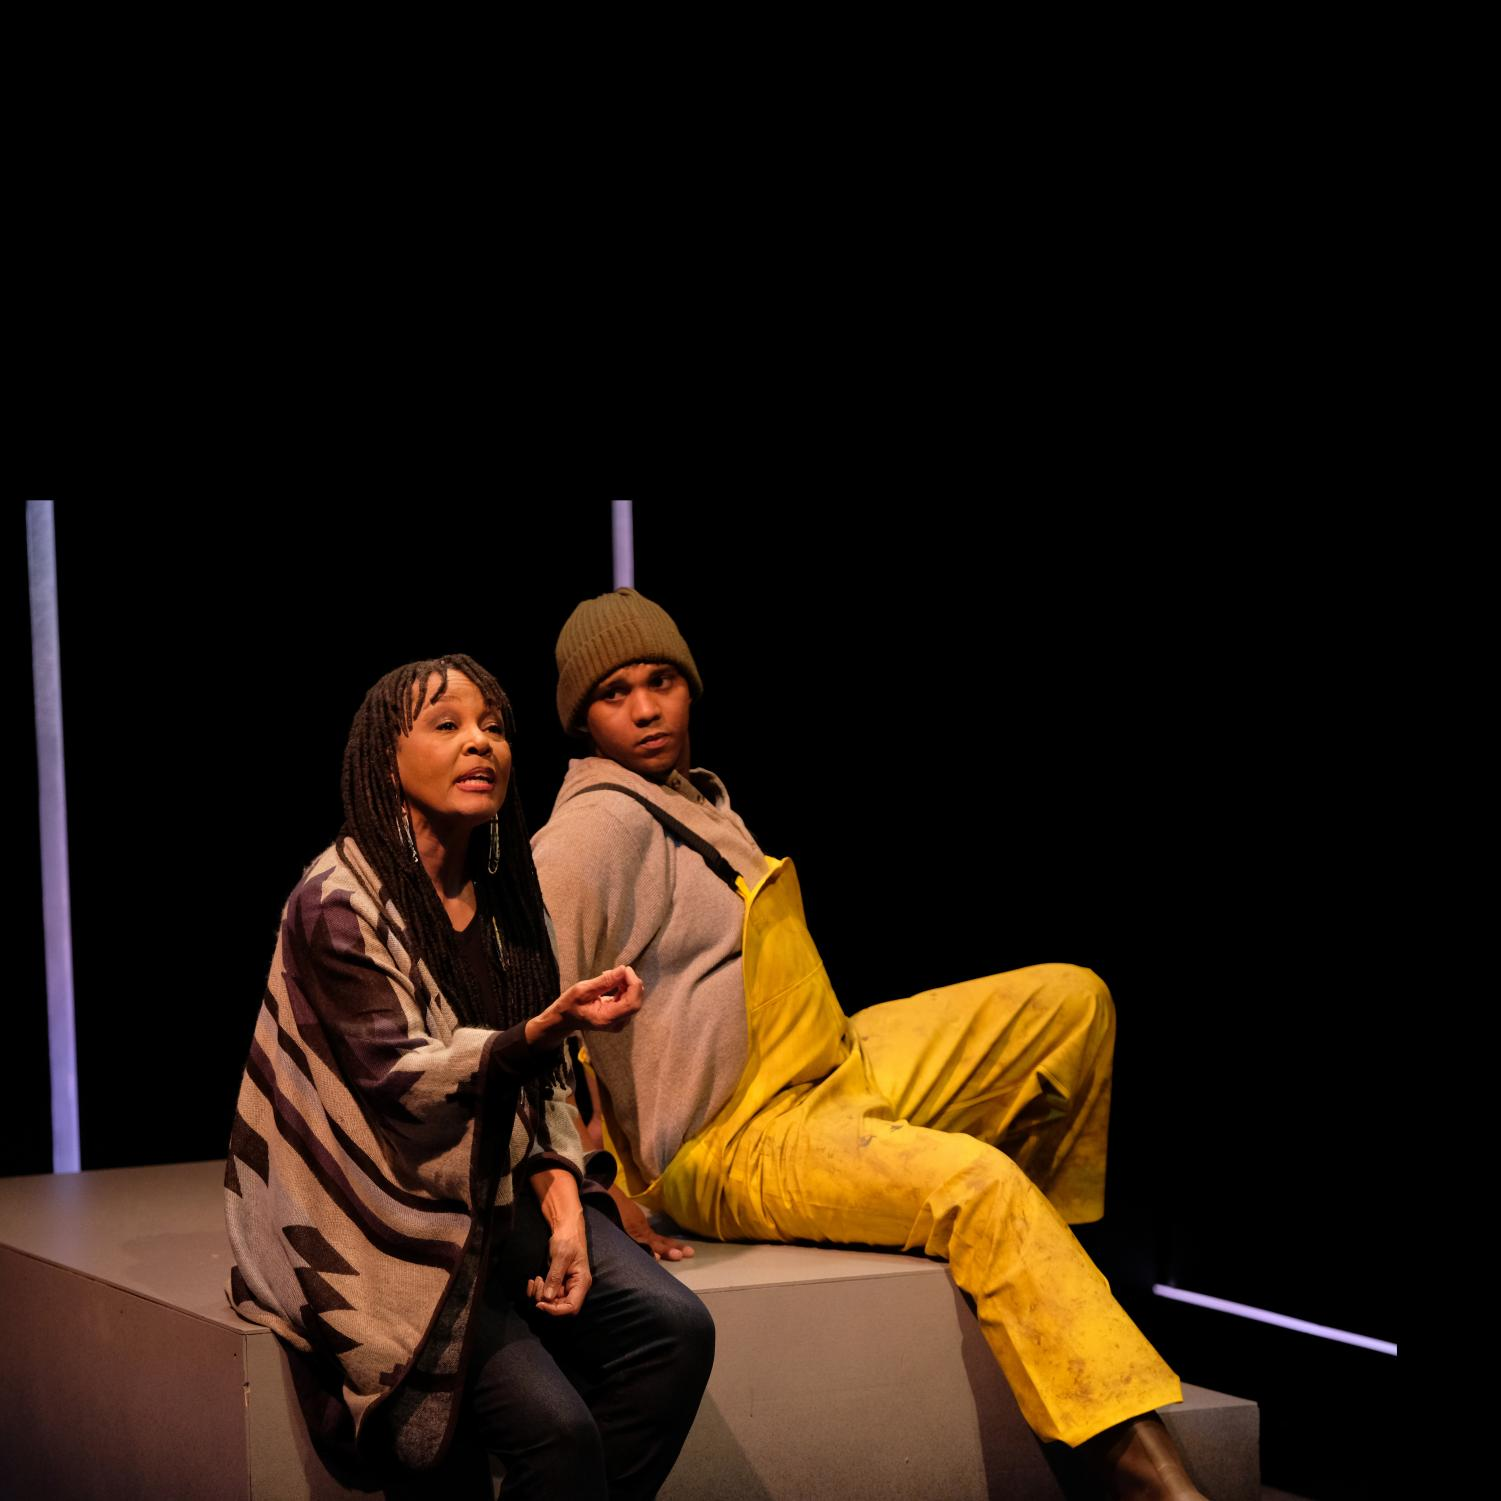 Actress Carla Nickerson and actor Kriston Woodreaux in Notes From the Field at ZACH Theatre. Photo by Kirk Tuck. Reprinted with permission.